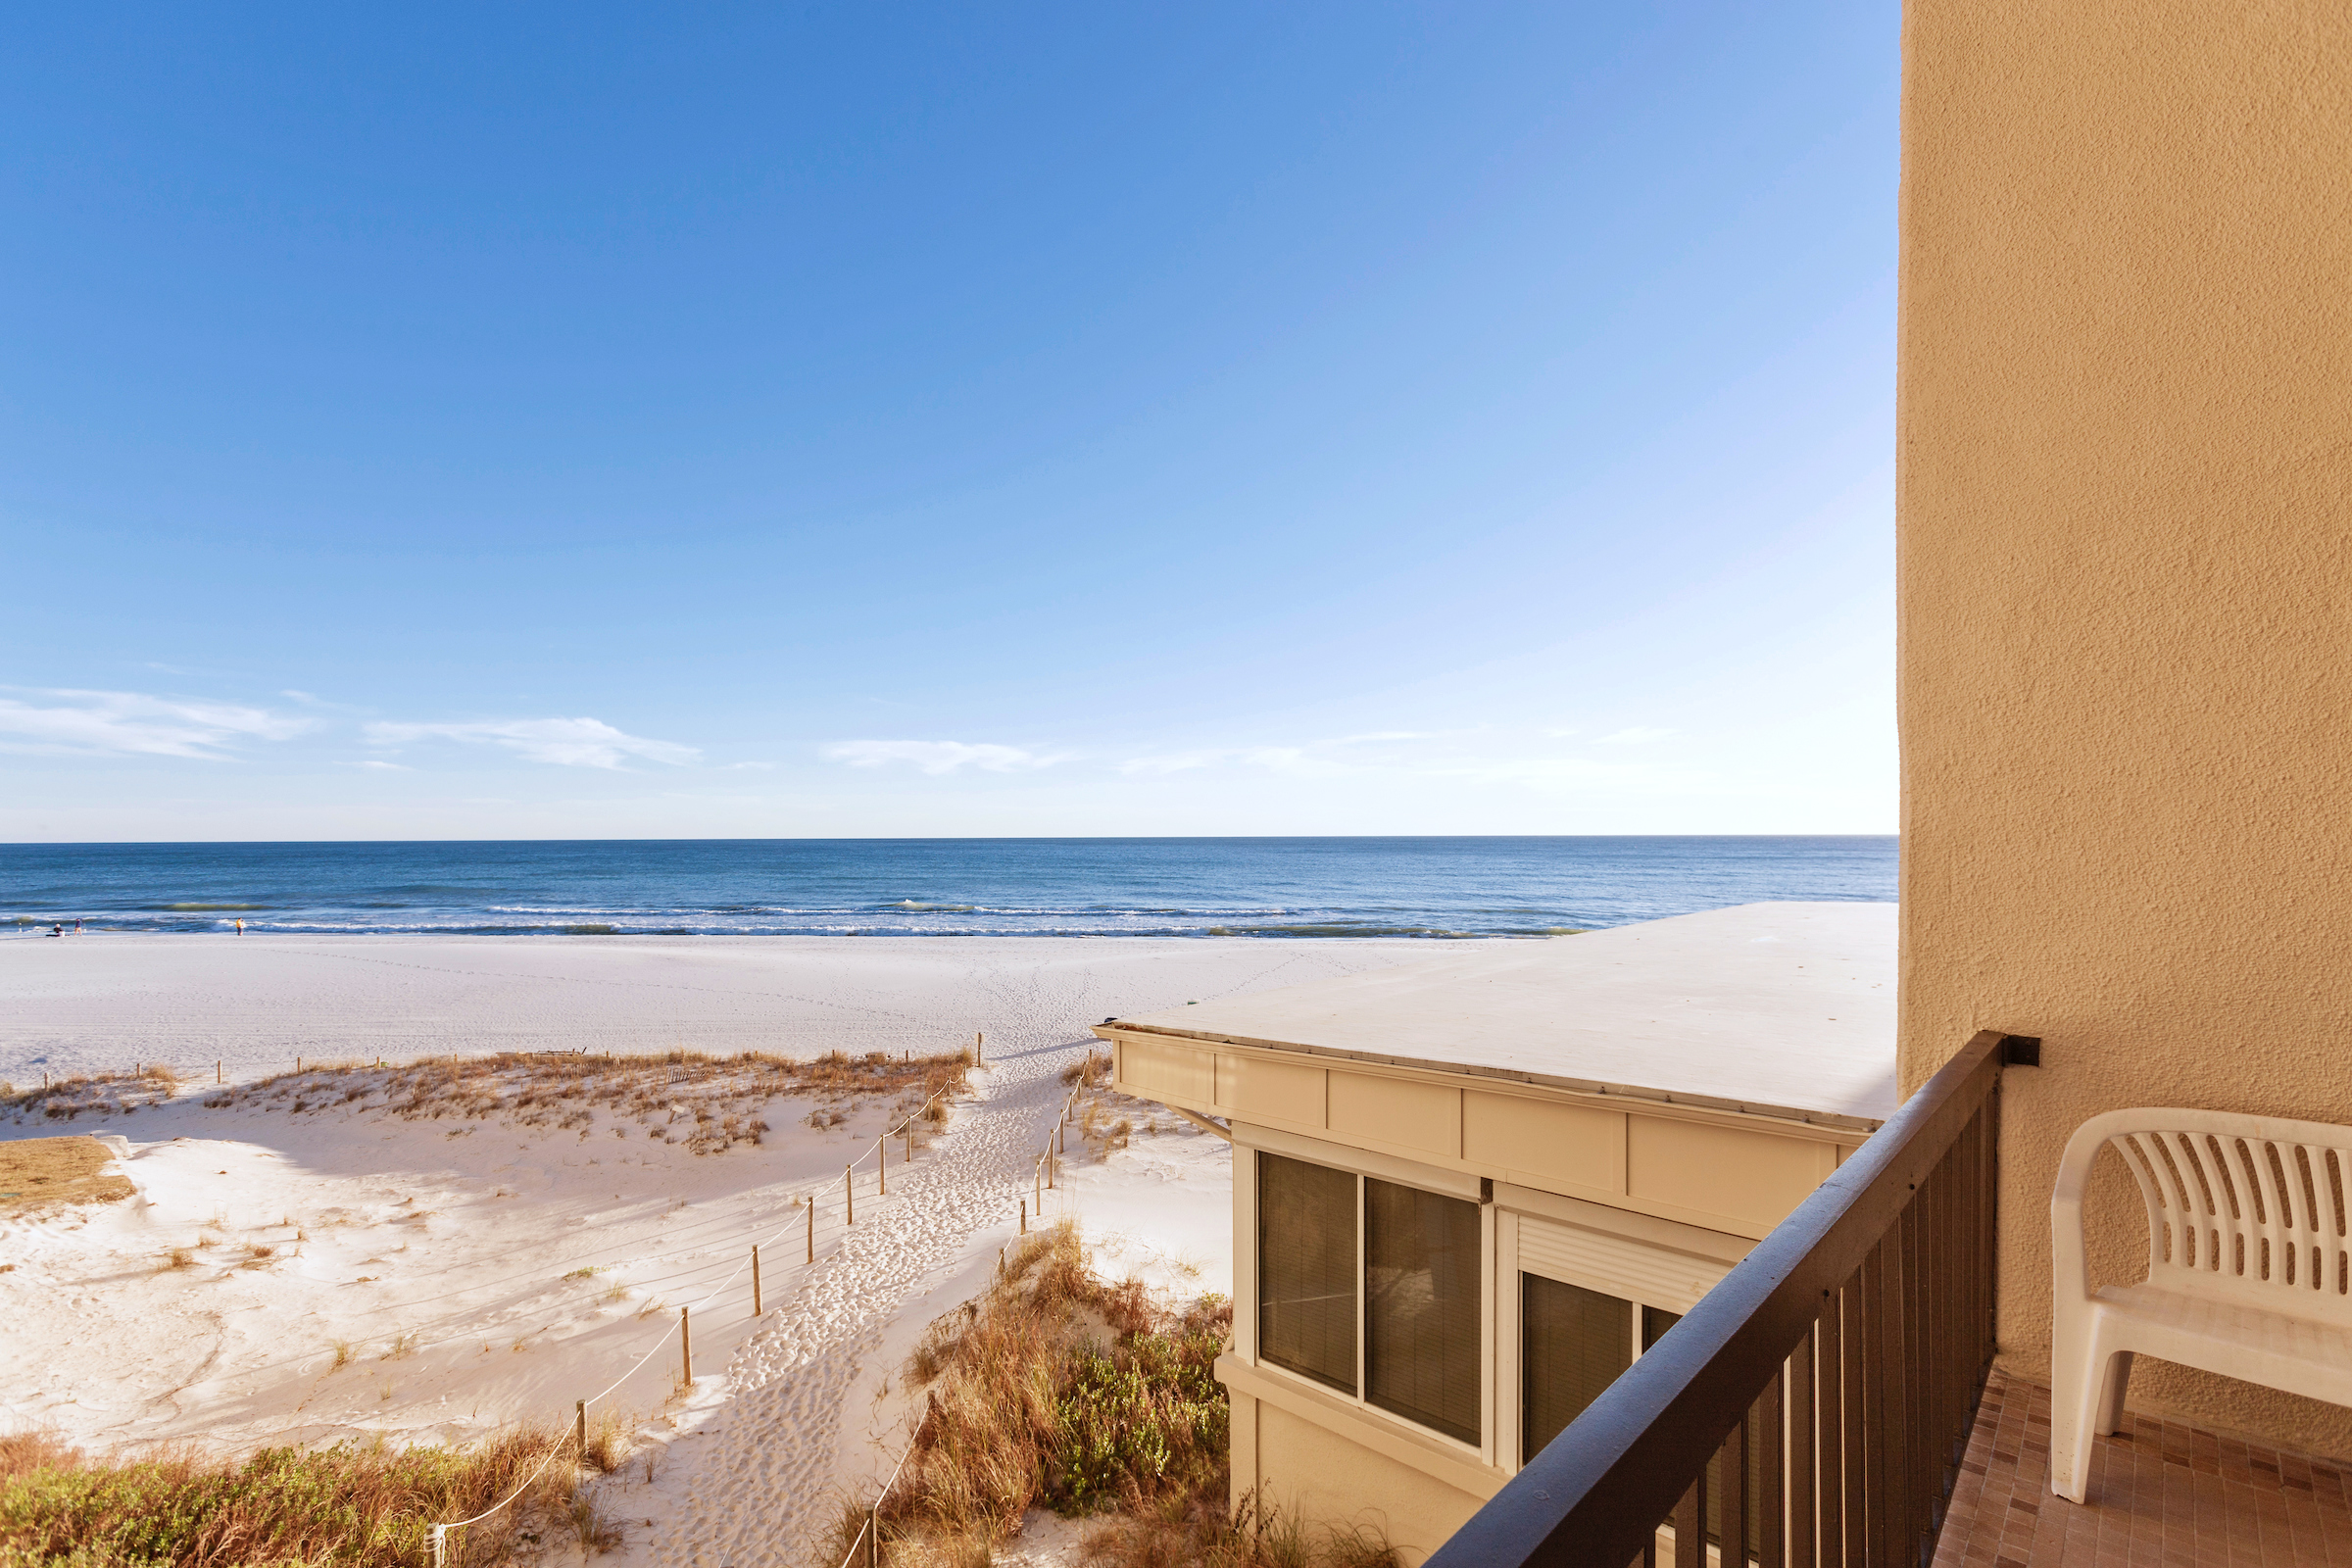 Panama City Beach FL Vacation Rental Enjoy stunning beach